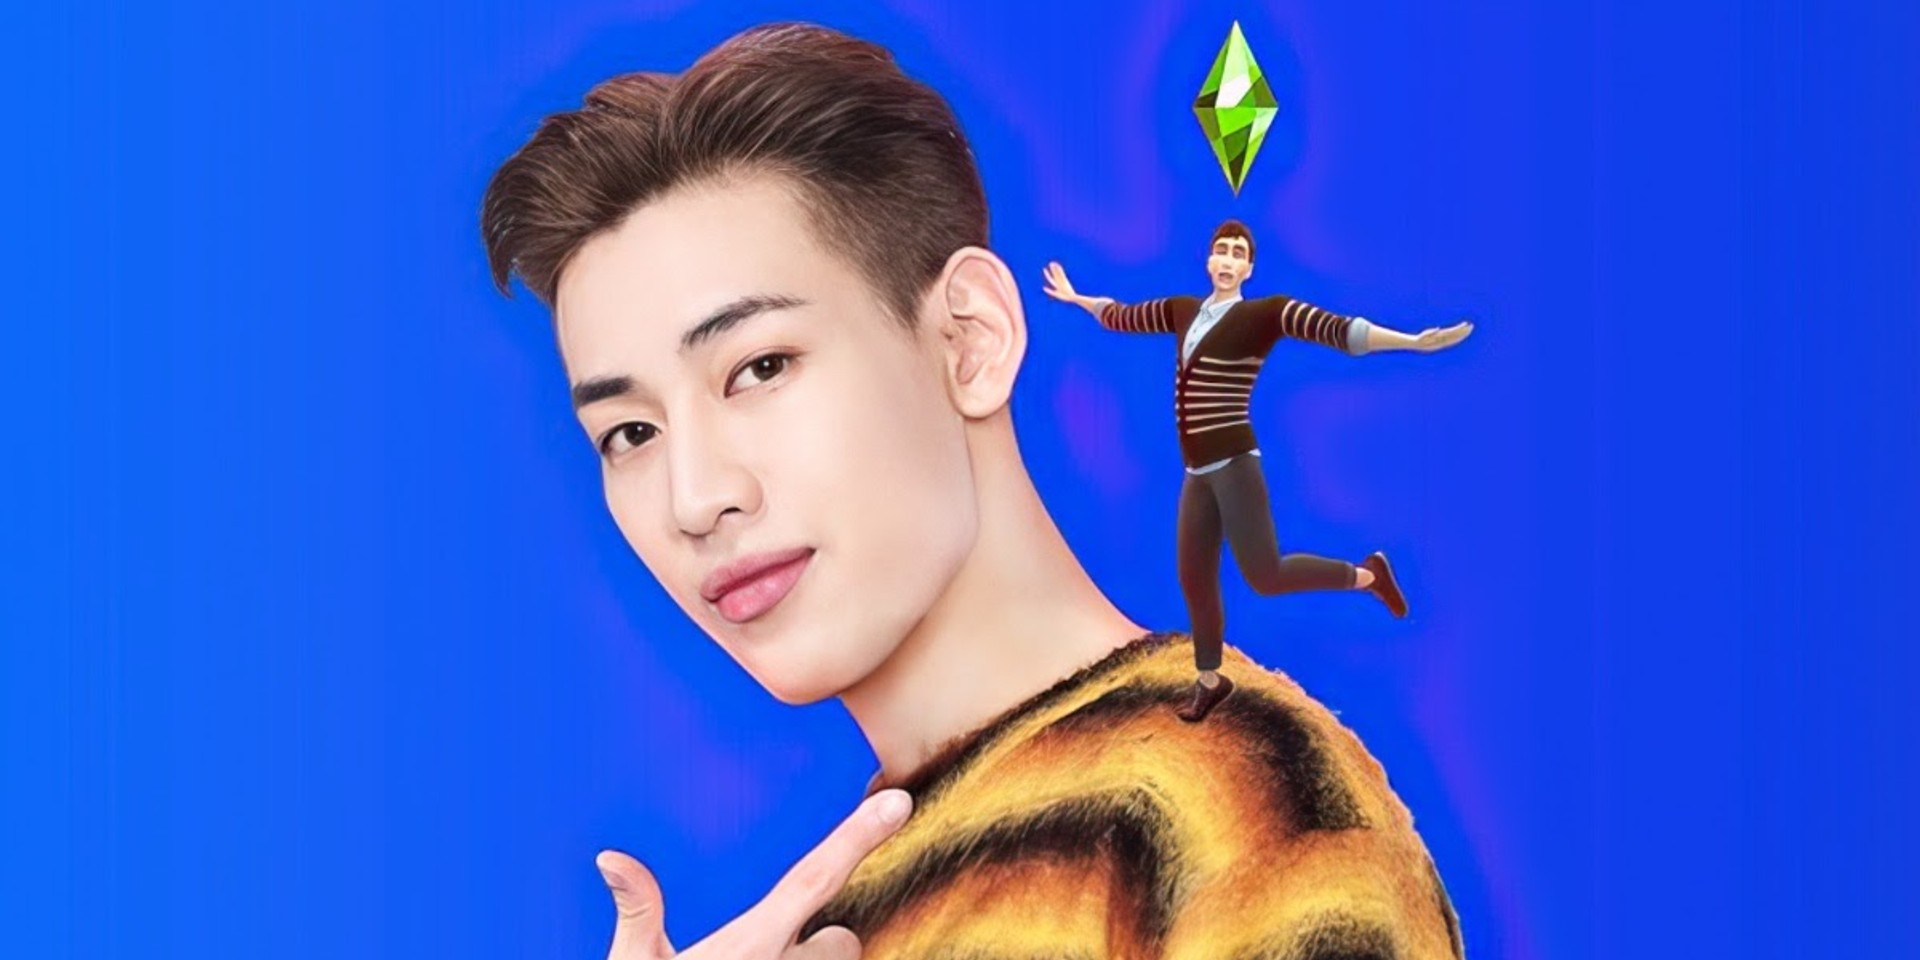 GOT7's BamBam becomes new ambassador for The Sims 4, hosts gameplay livestream